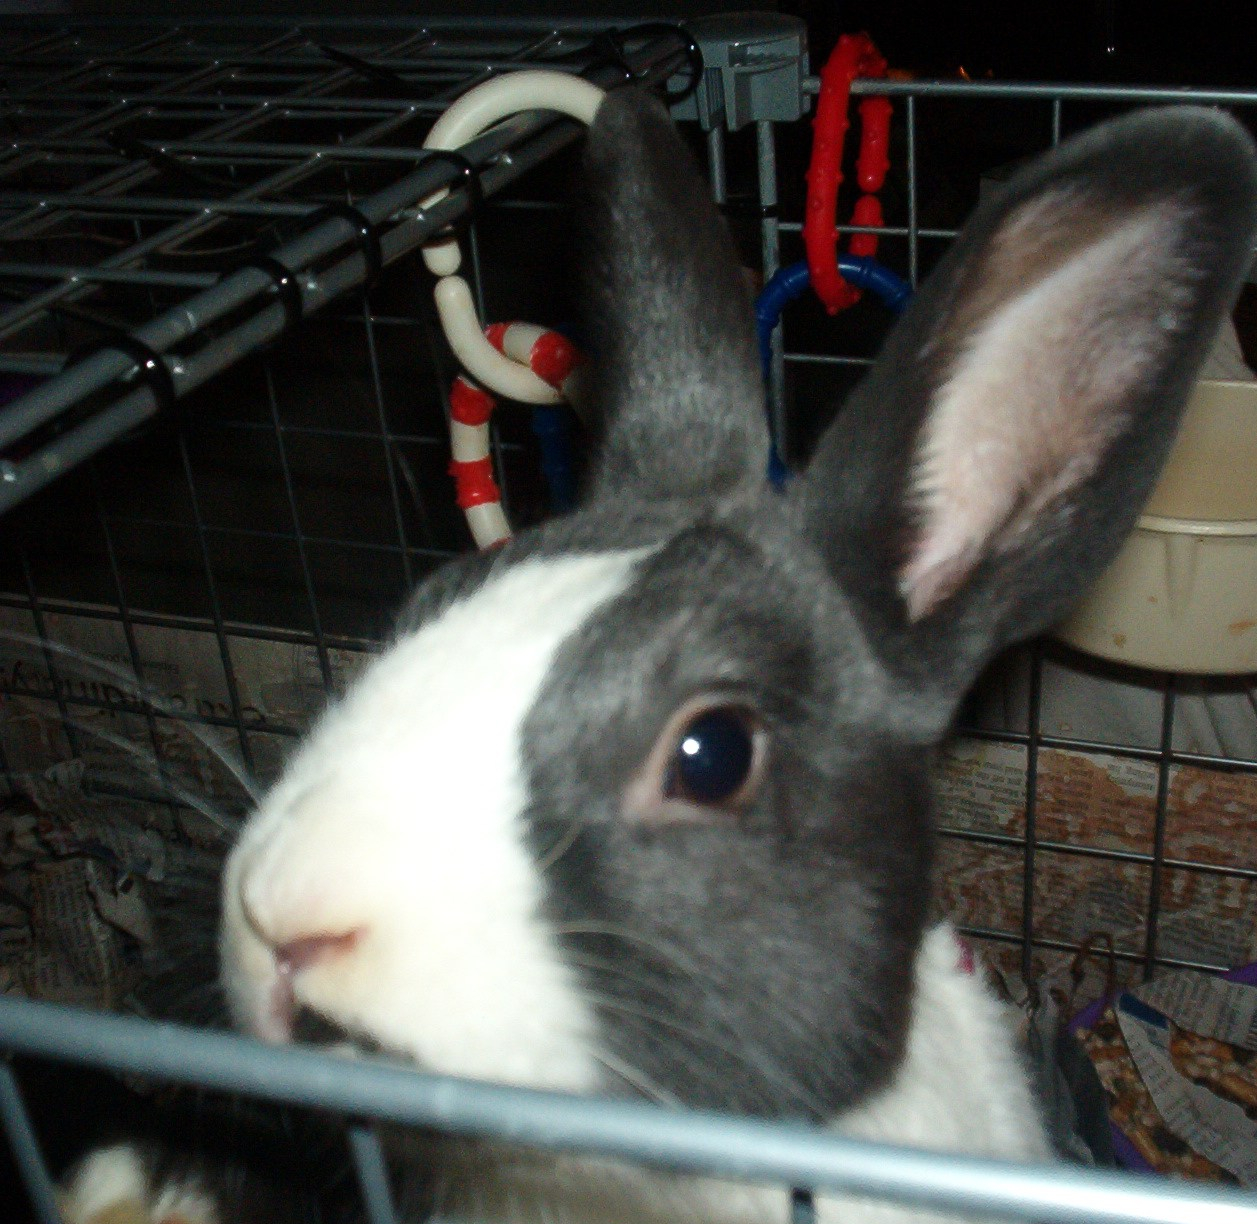 the head of a small rabbit with a white nose and black ears looking up out of a cage